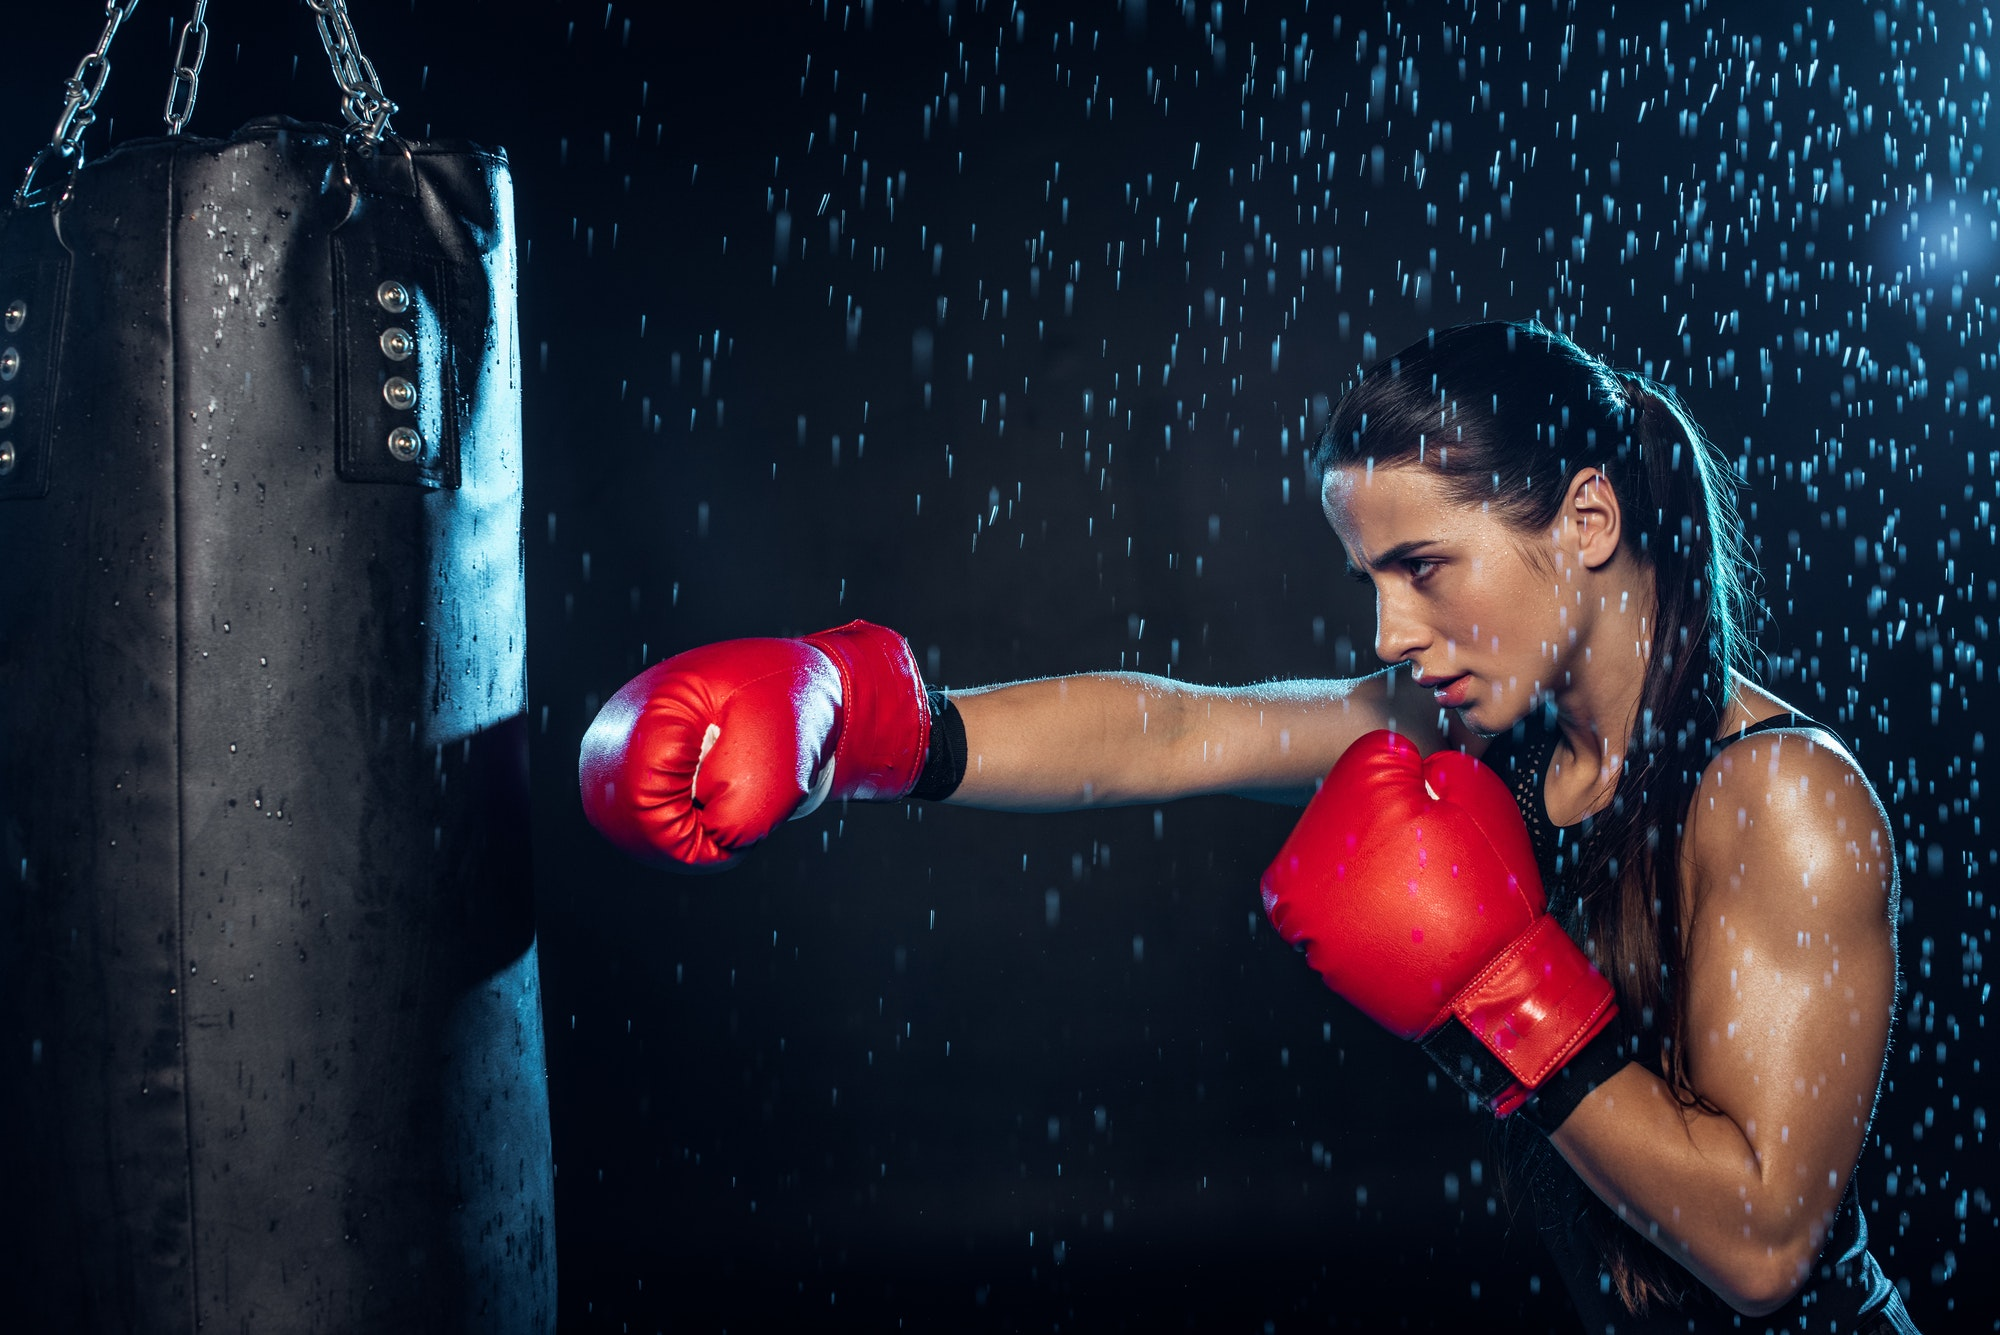 Pensive boxer in red boxing gloves training under water drops on black